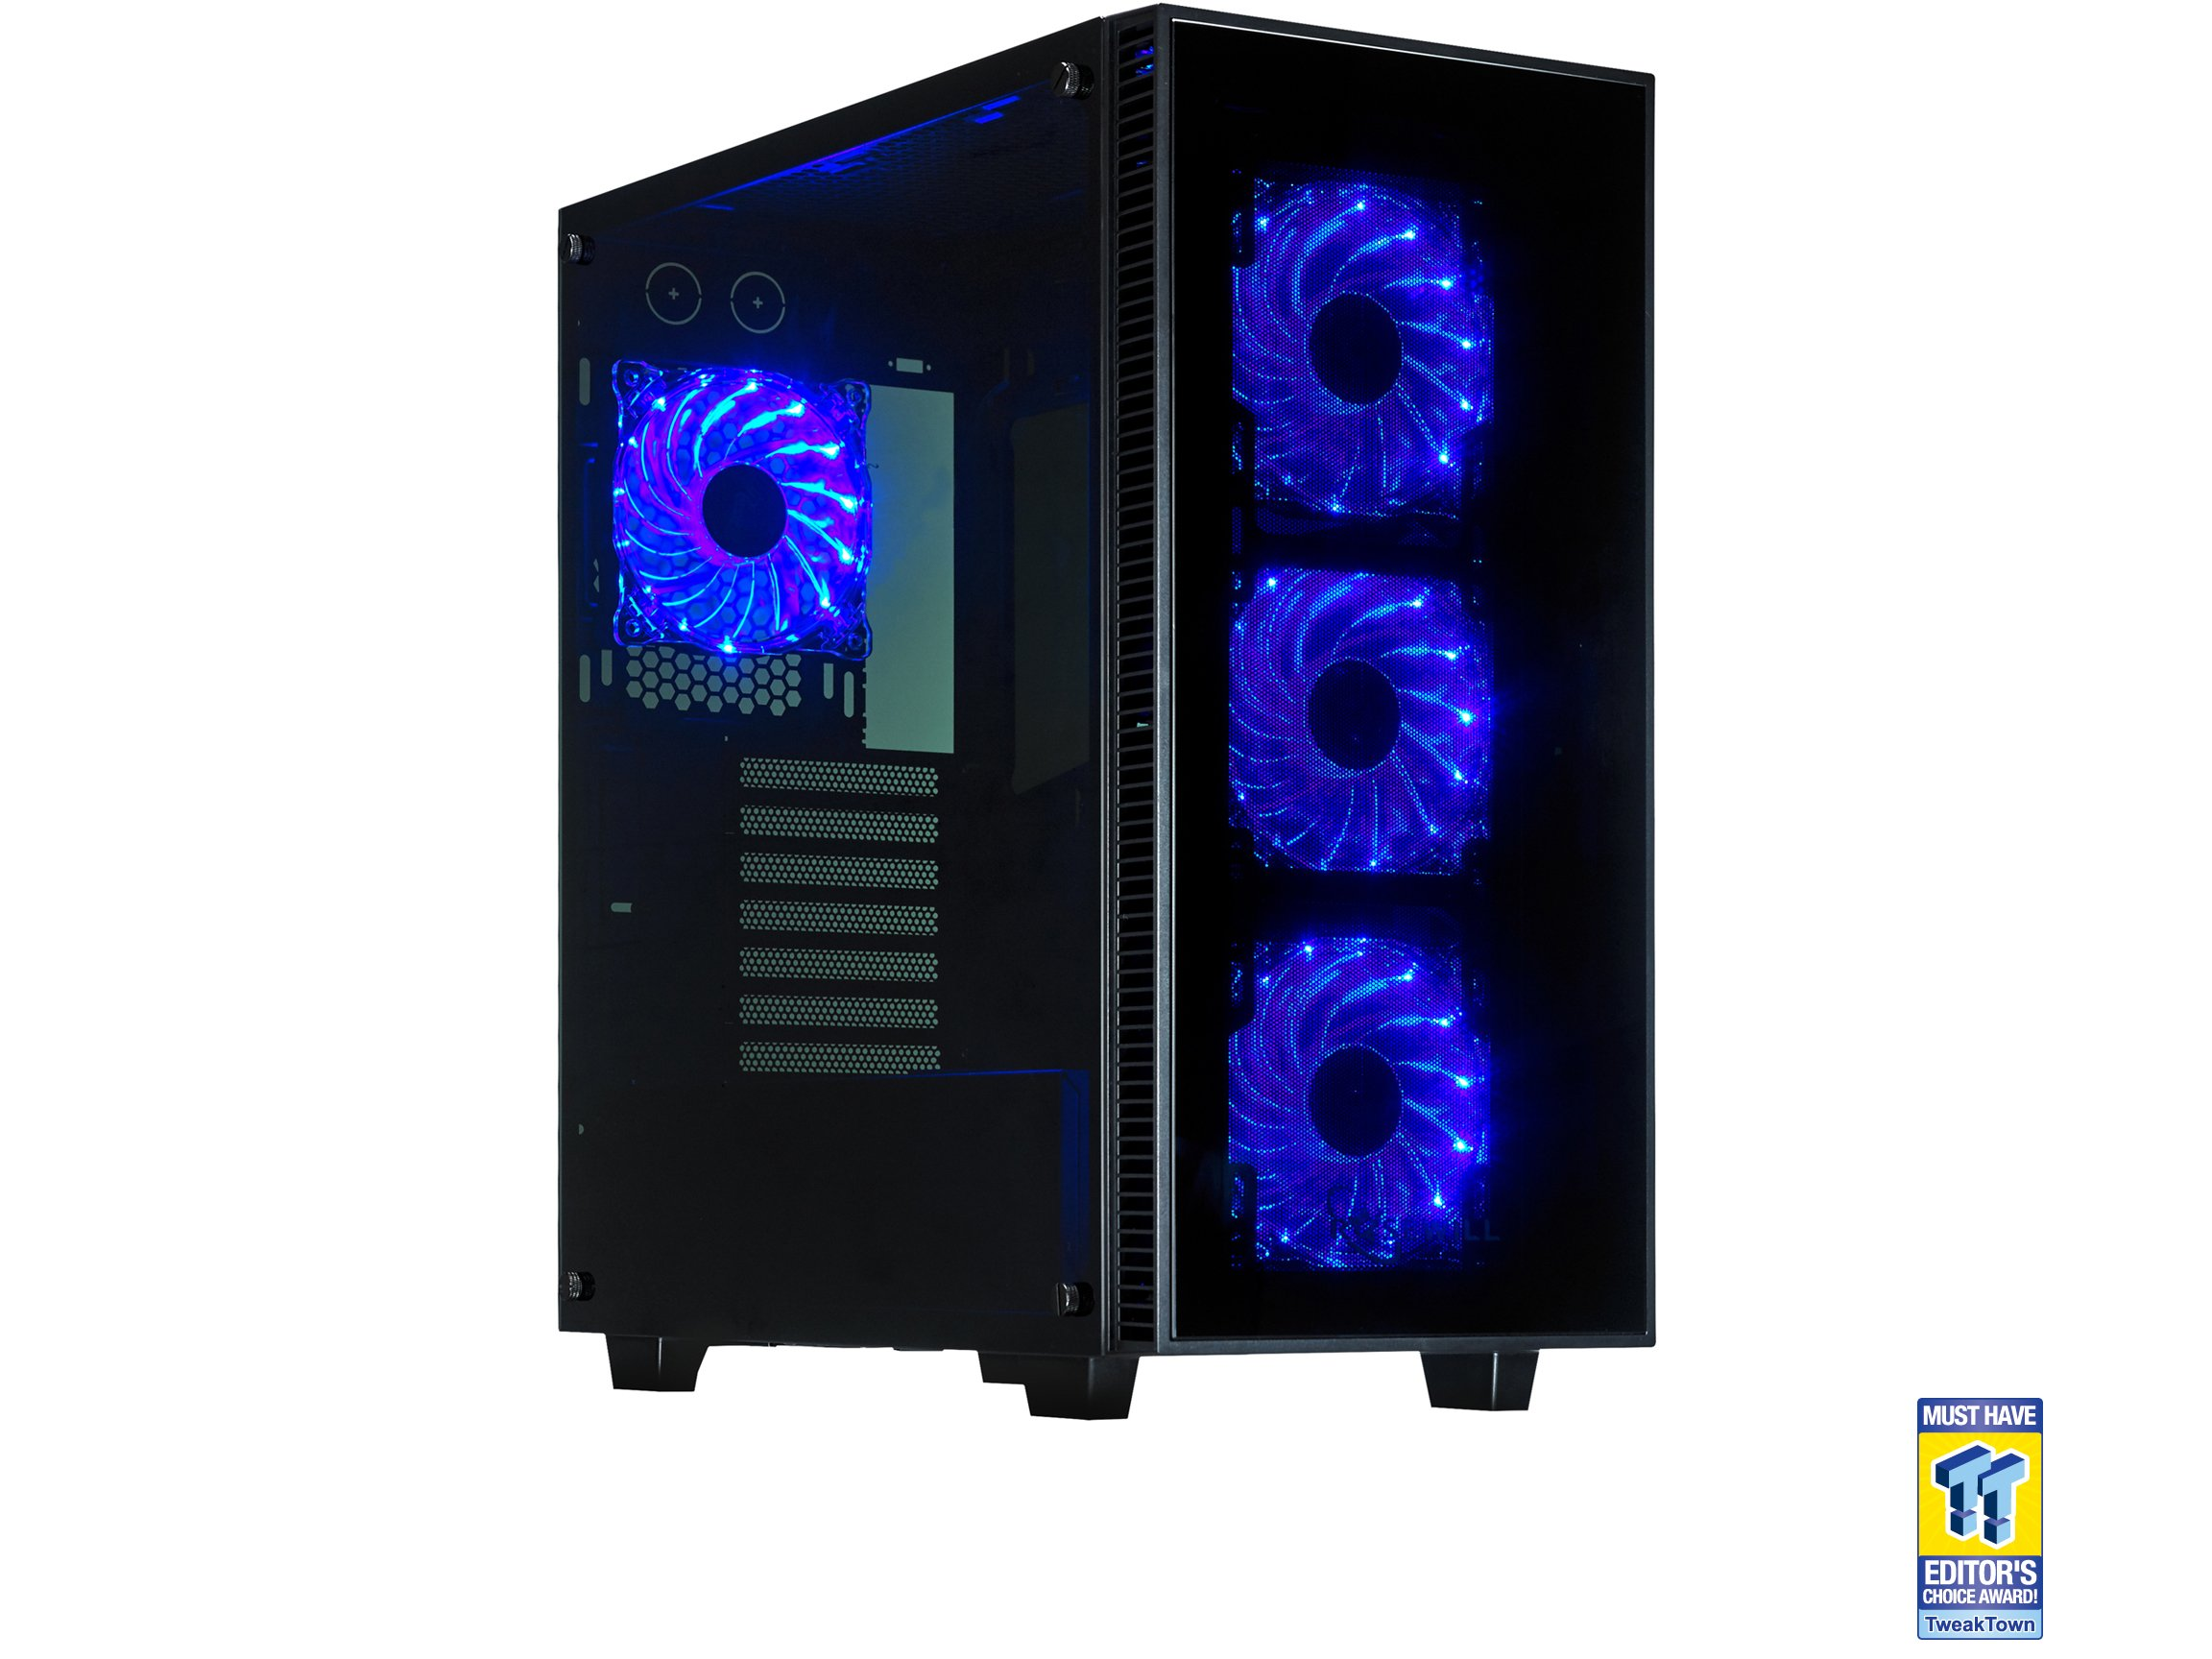 Rosewill ATX Mid Tower Gaming Computer Case, Tempered Glass Panels, Up to 420mm GPU, 360mm Liquid-cooling, 4 120mm Fans Pre-installed - CULLINAN by Rosewill